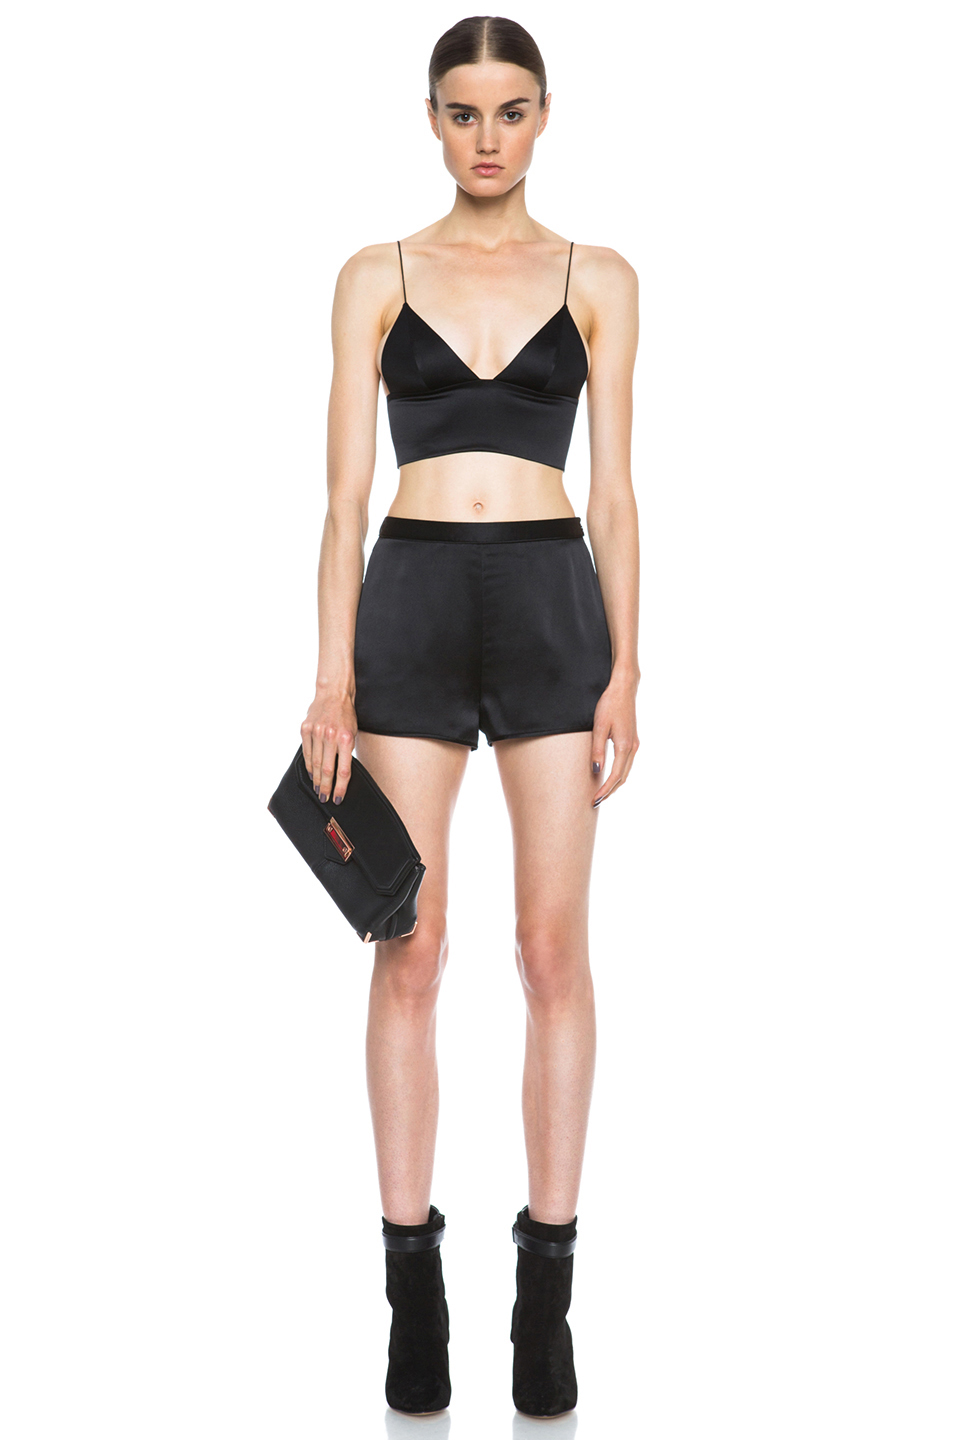 T by Alexander Wang|Silk Satin Triangle Bralette in Black